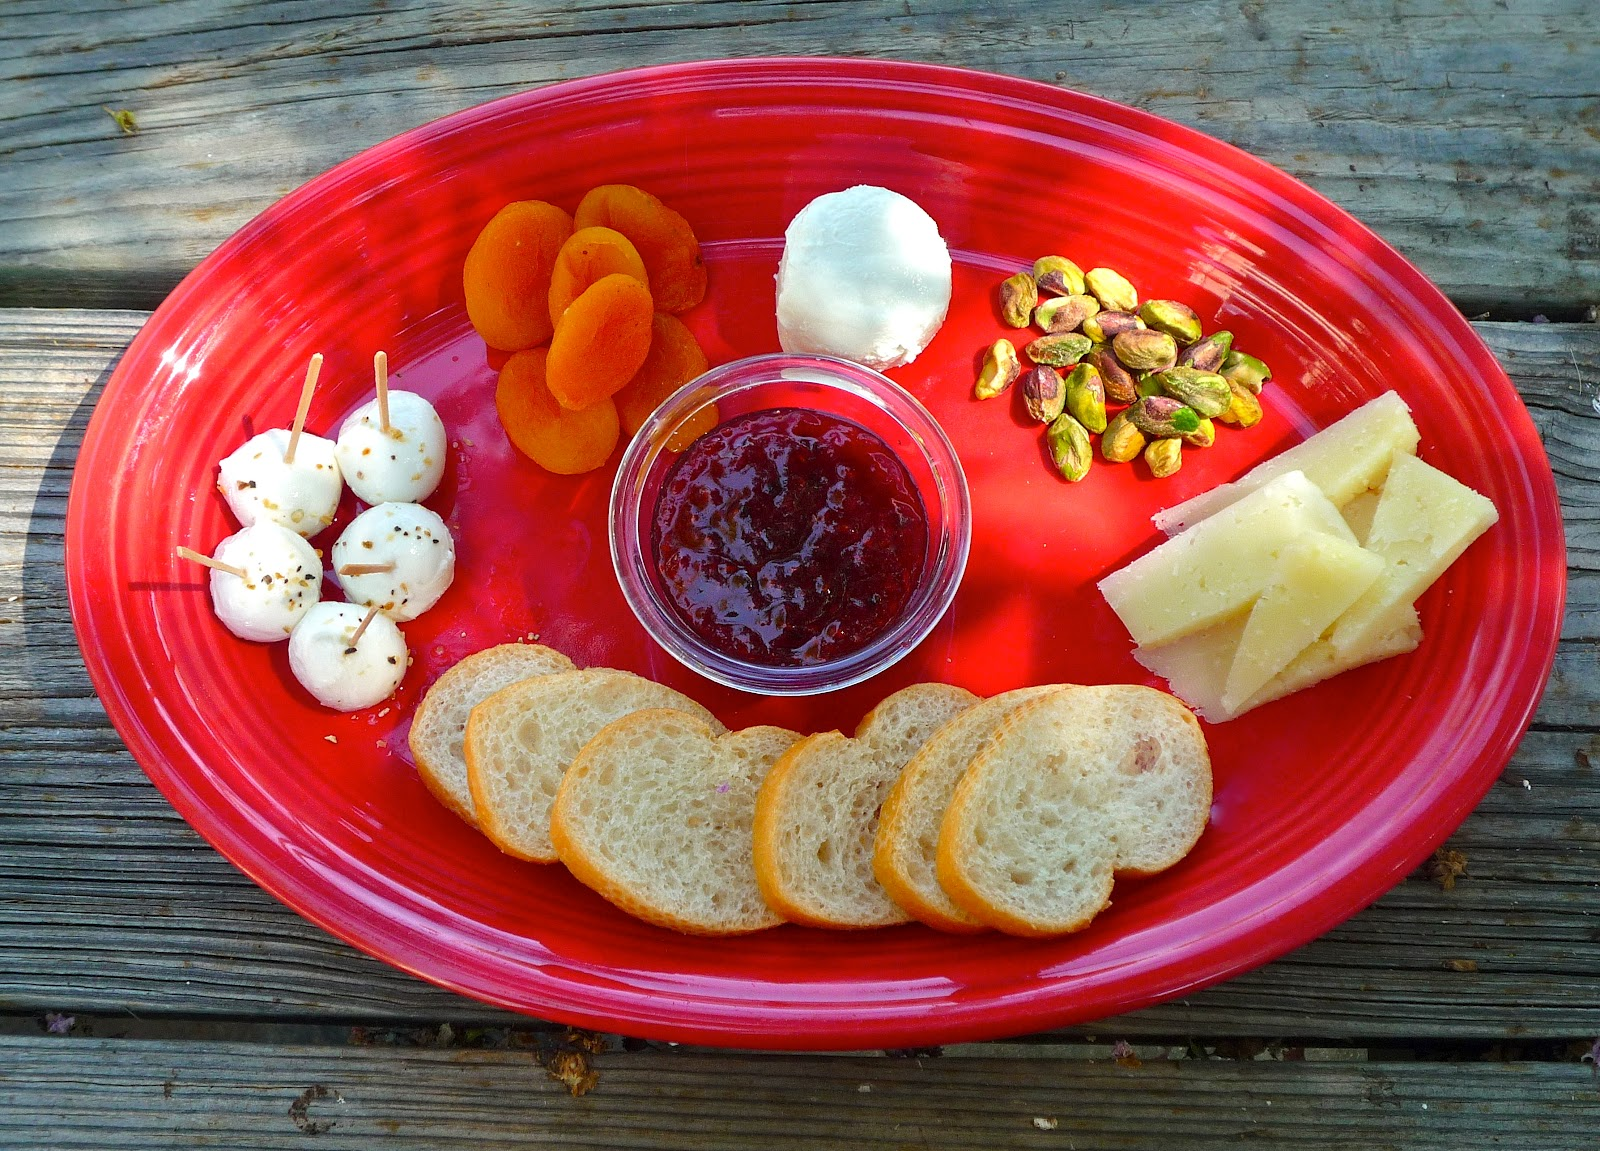 Cheese Plate 101 Creating a Perfect Appetizer for Two! & The Weekend Gourmet: Cheese Plate 101: Creating a Perfect Appetizer ...